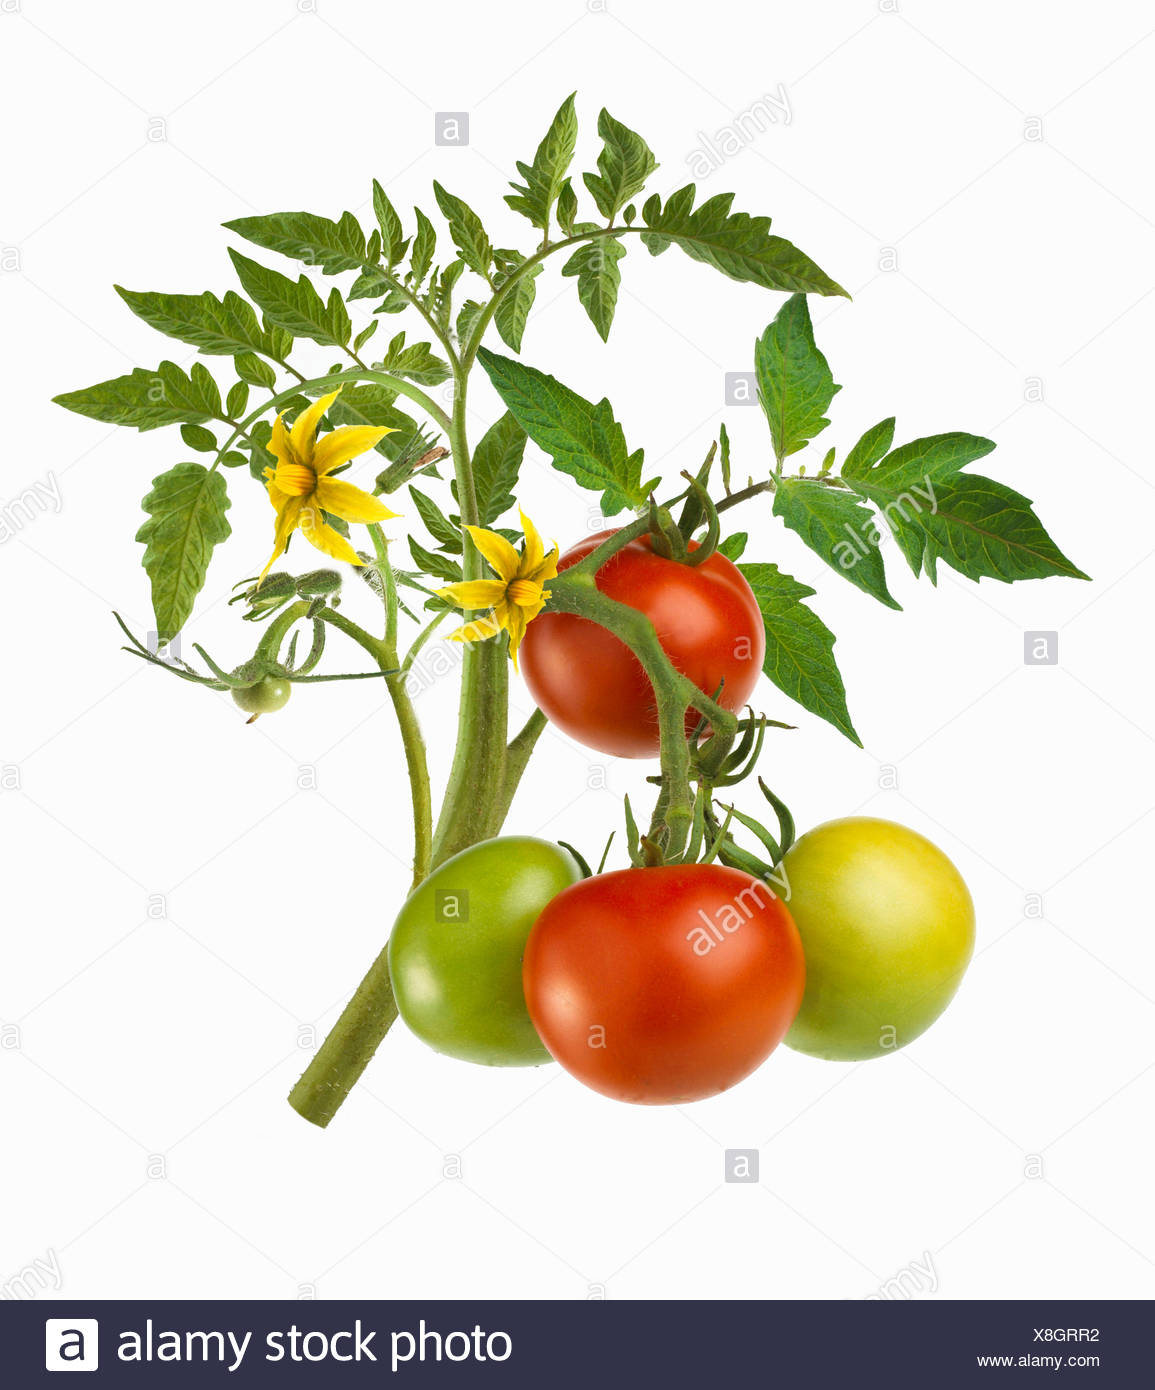 Tomato Flowers Cut Out Stock Images Pictures Alamy Prune Tomatoes Diagram Of Plant Stalk With Ripe Unripe Image